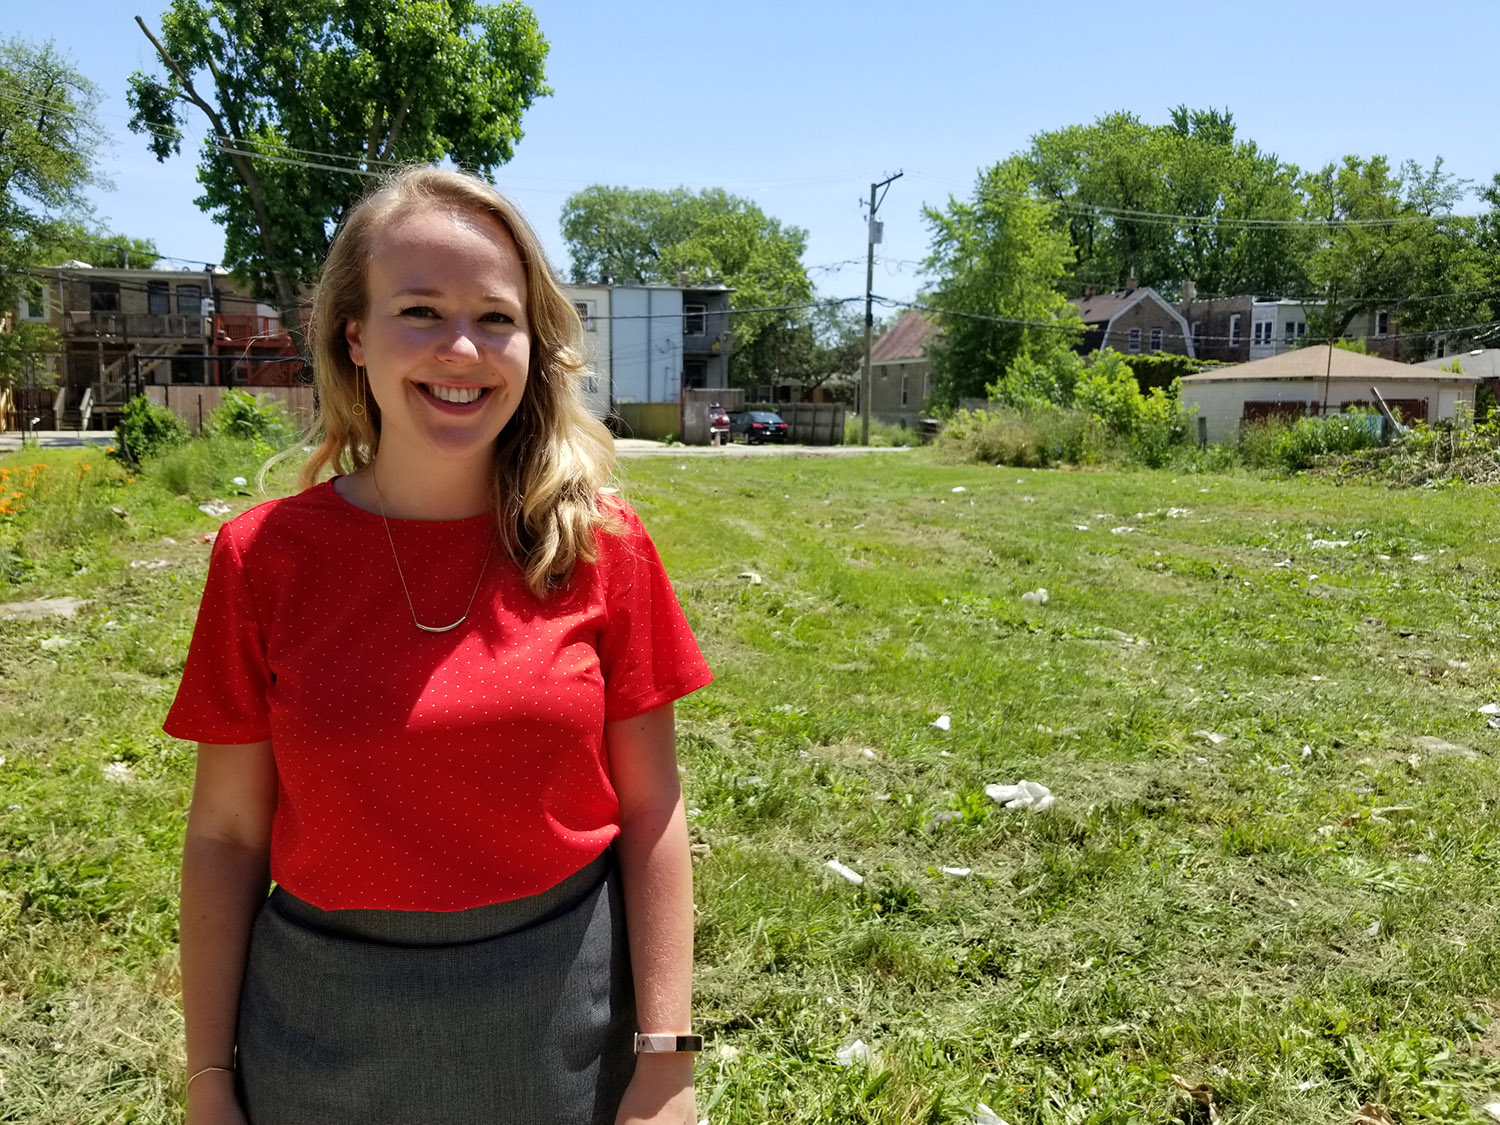 Sarah Brune, manager of innovation and public policy with Neighborhood Housing Services, stands in a vacant lot on the Chicago's West Side where the winning entry will be built. NHS is one of the affordable housing groups sponsoring the contest.